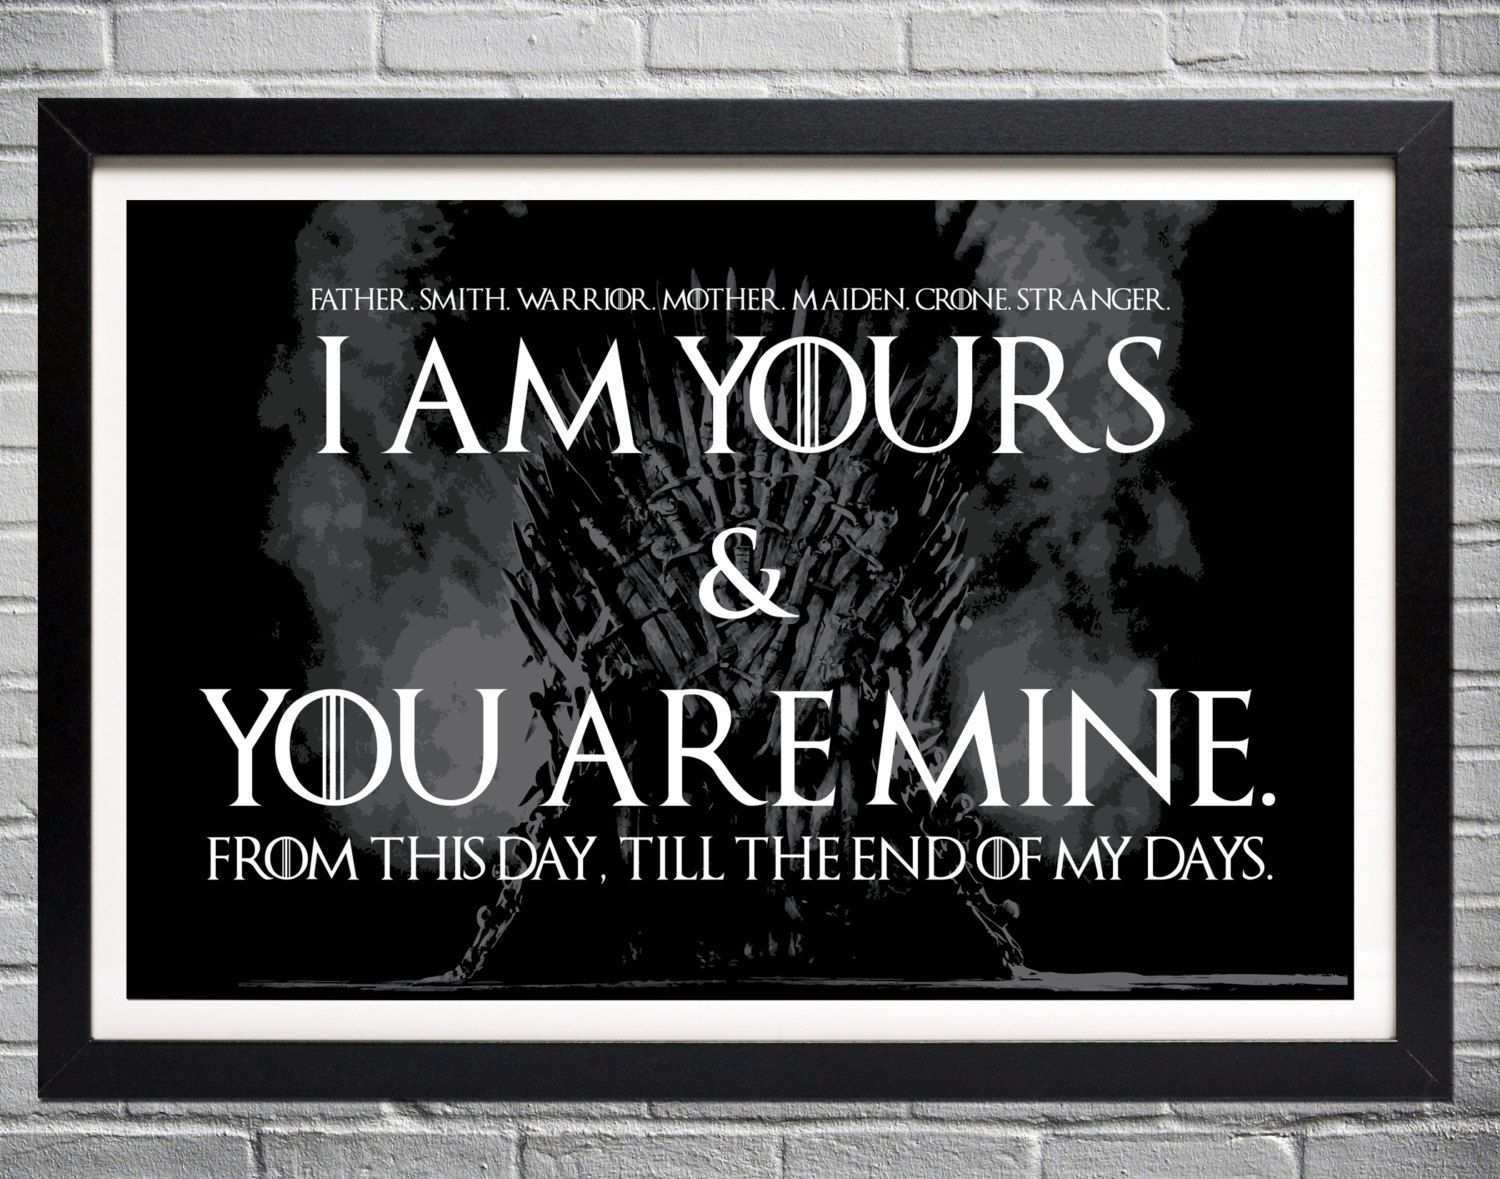 Frase De Matrimonio Juego De Tronos.Game Of Thrones Wedding Vows Juego De Tronos Game Of Thrones Boda